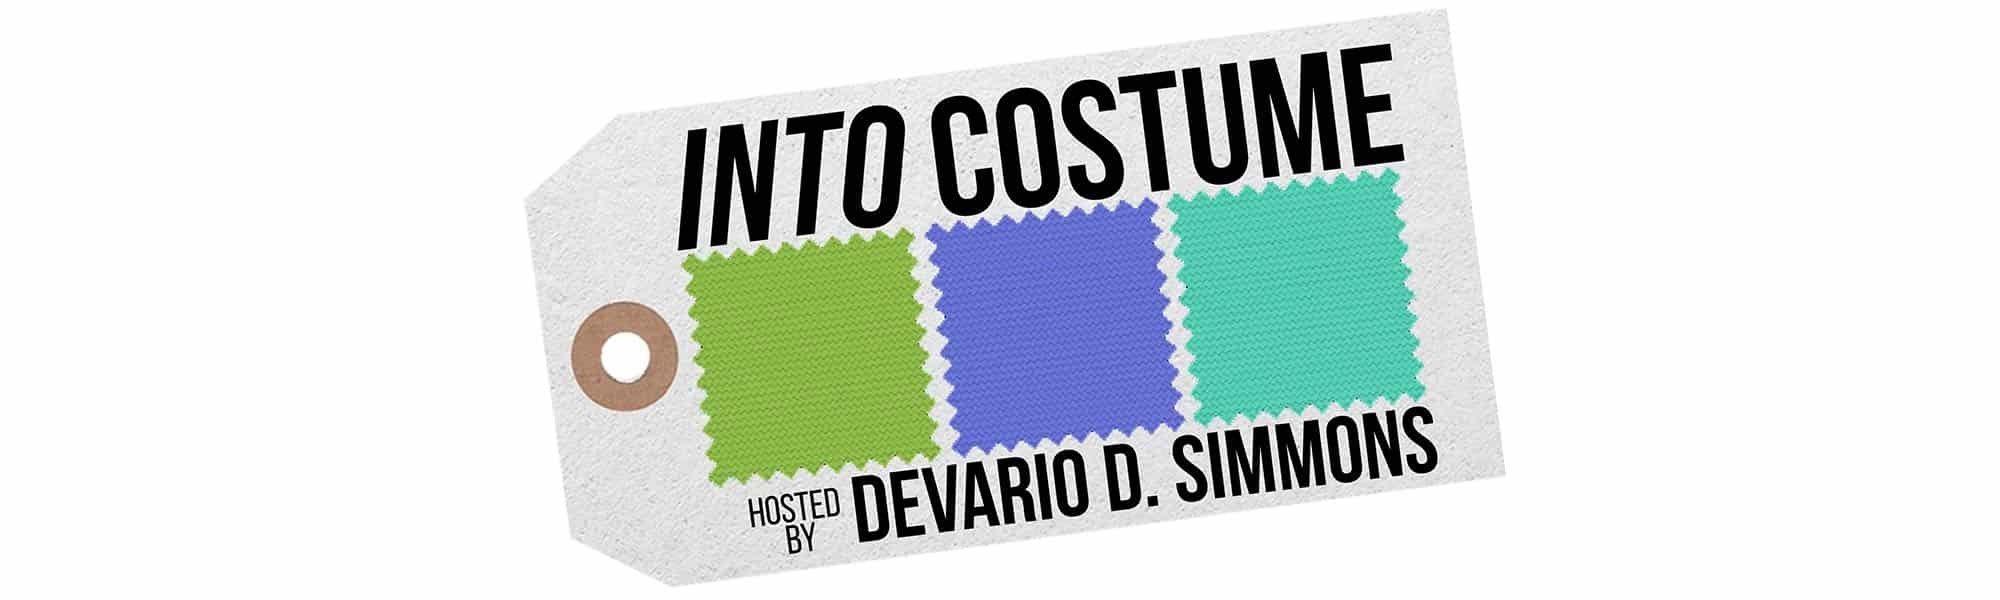 Into Costume banner